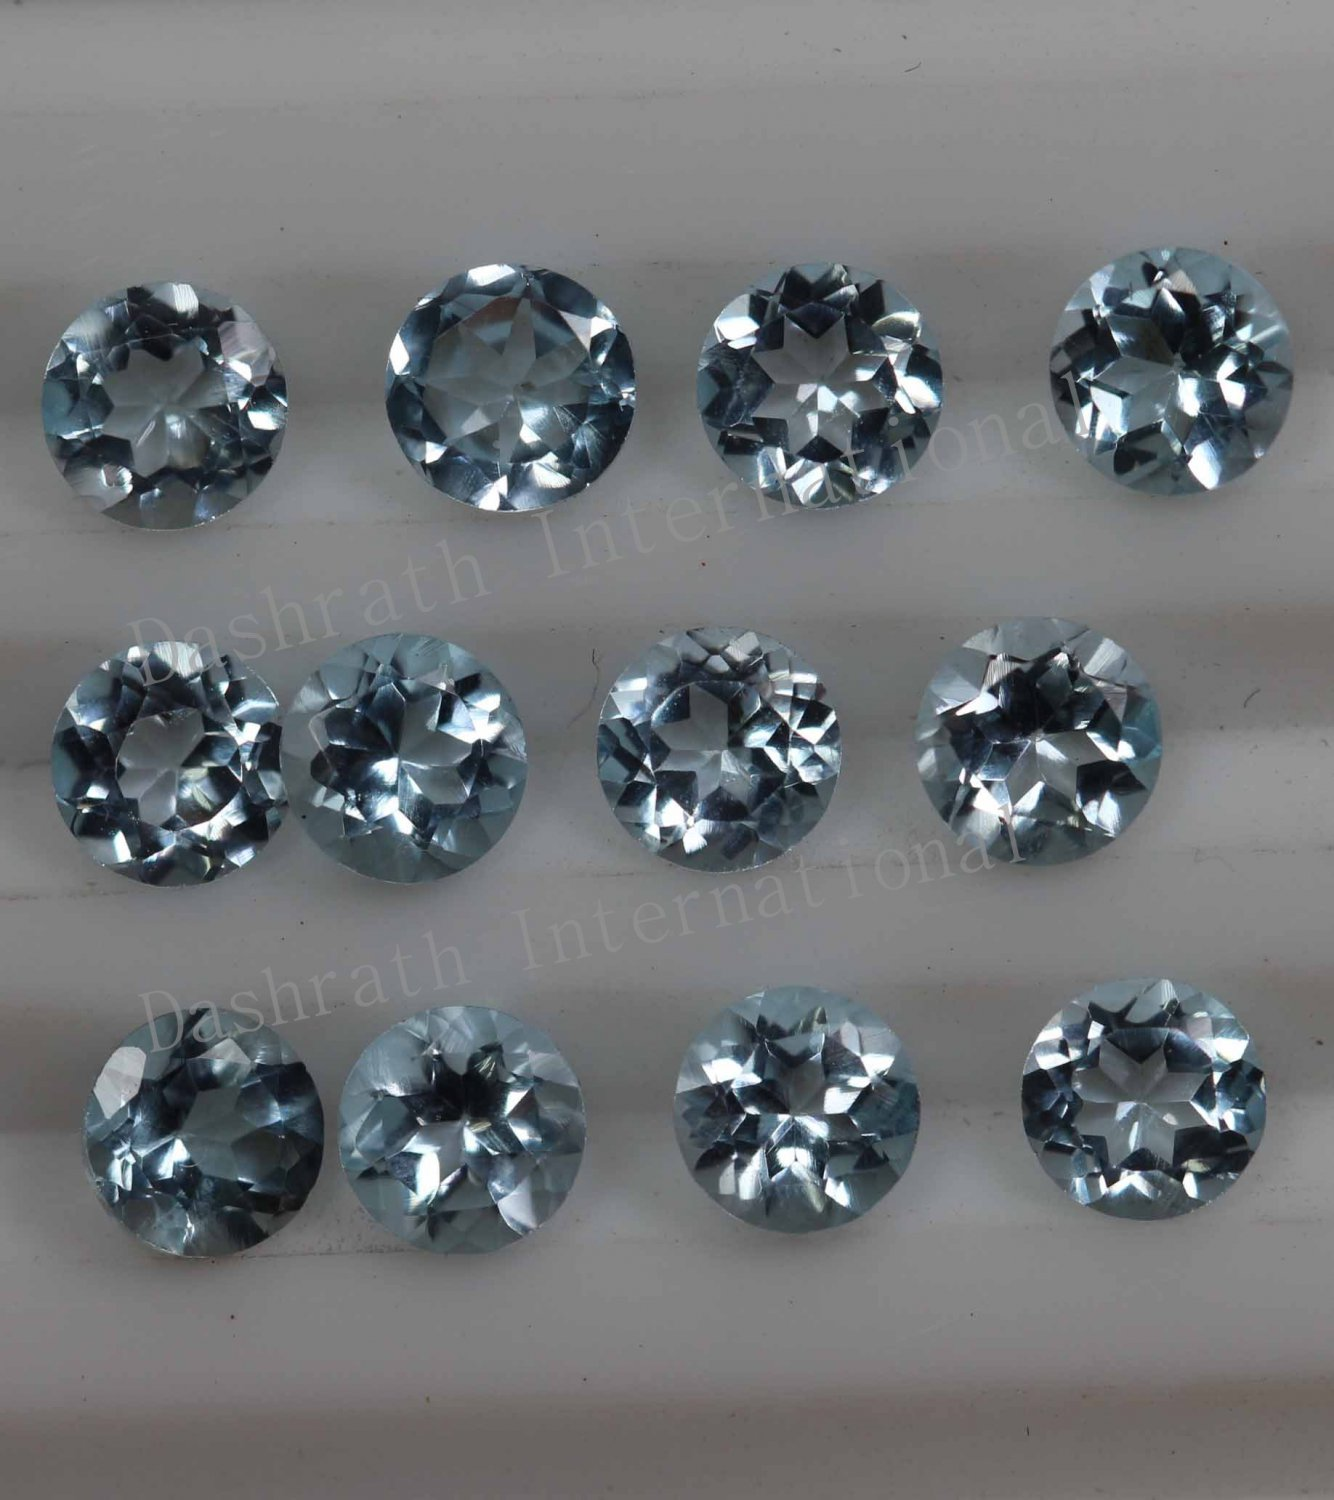 4mmNatural Sky Blue Topaz Faceted Cut Round 25 Pieces Lot Blue Color  Top Quality Loose Gemstone